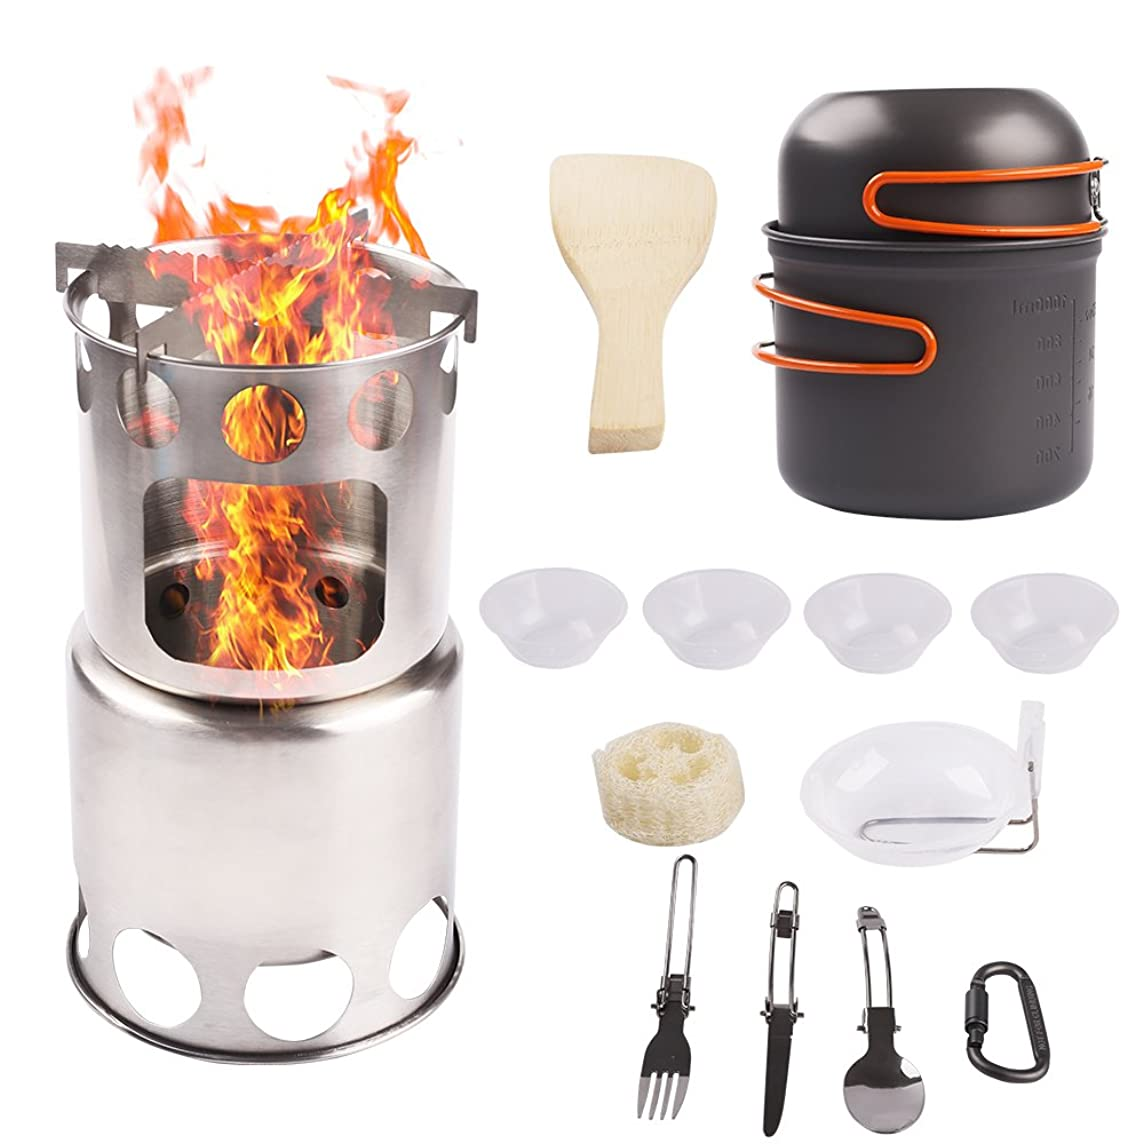 Camp Stove Cookware Combo Stainless Steel Wood Burning Ultralight Portable Backpacking Cook Set for BBQ Hiking Picnic Outdoors